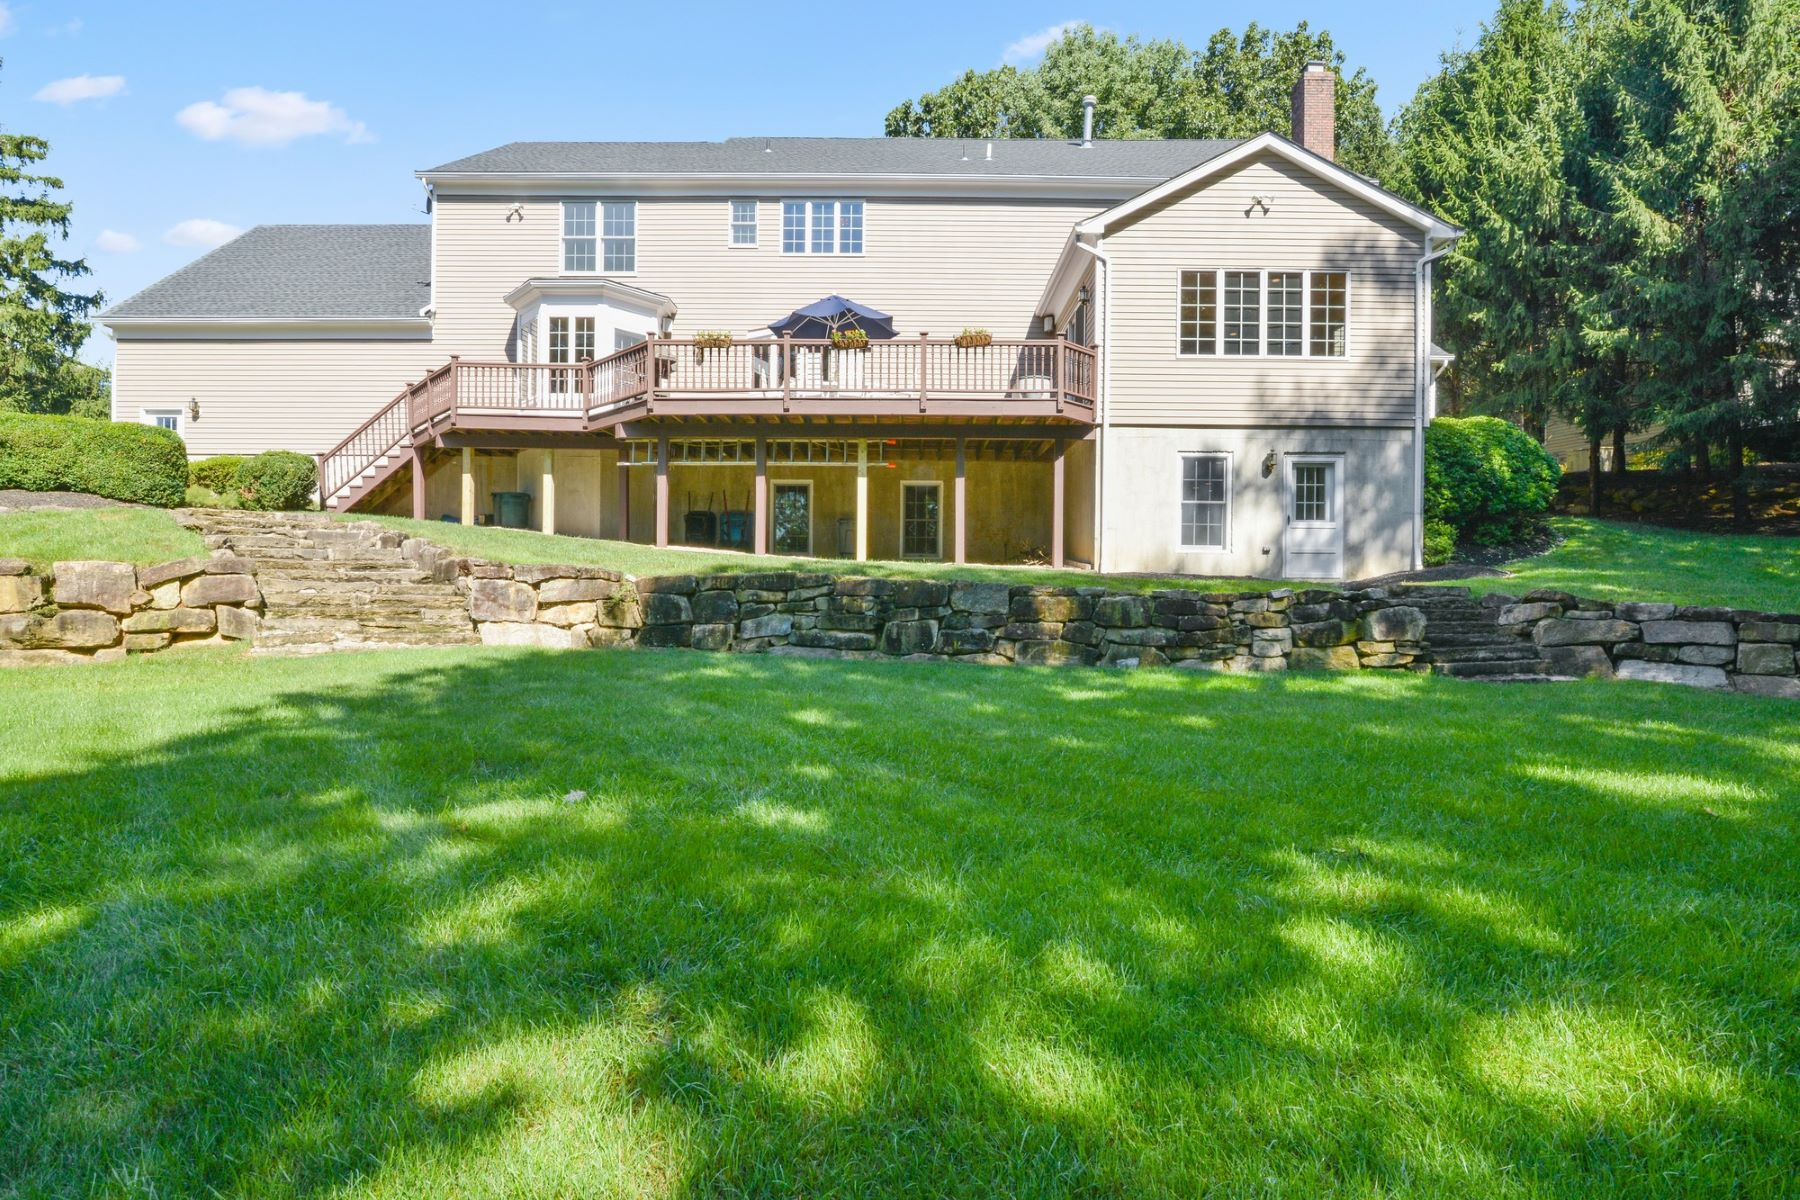 Single Family Homes for Active at Classic Brick Front Colonial 18 White Oak Ridge Court Mendham, New Jersey 07945 United States